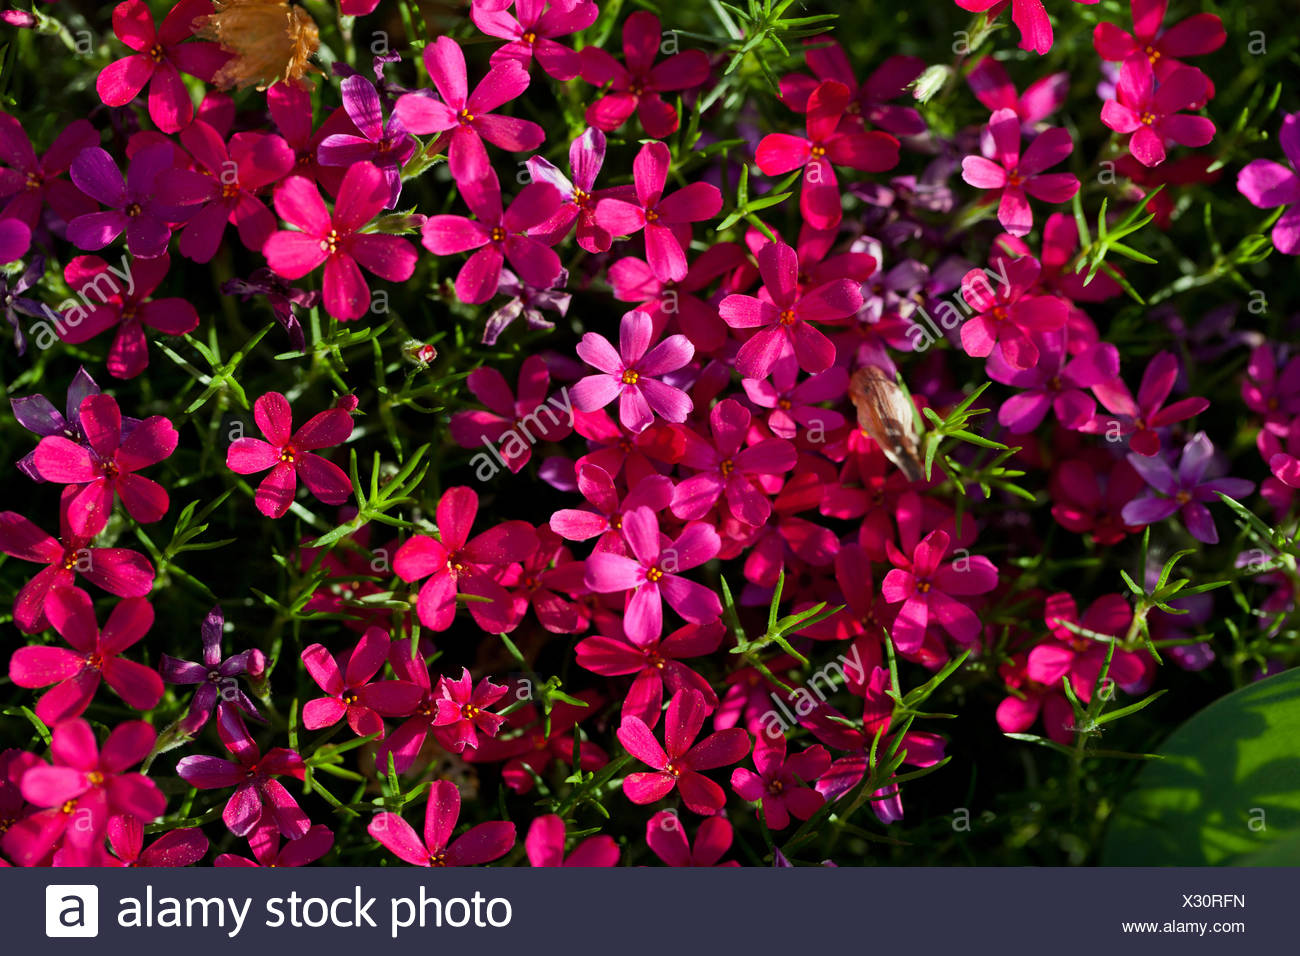 Flower Flowers Plant Small Tiny Little Short Purple Pink